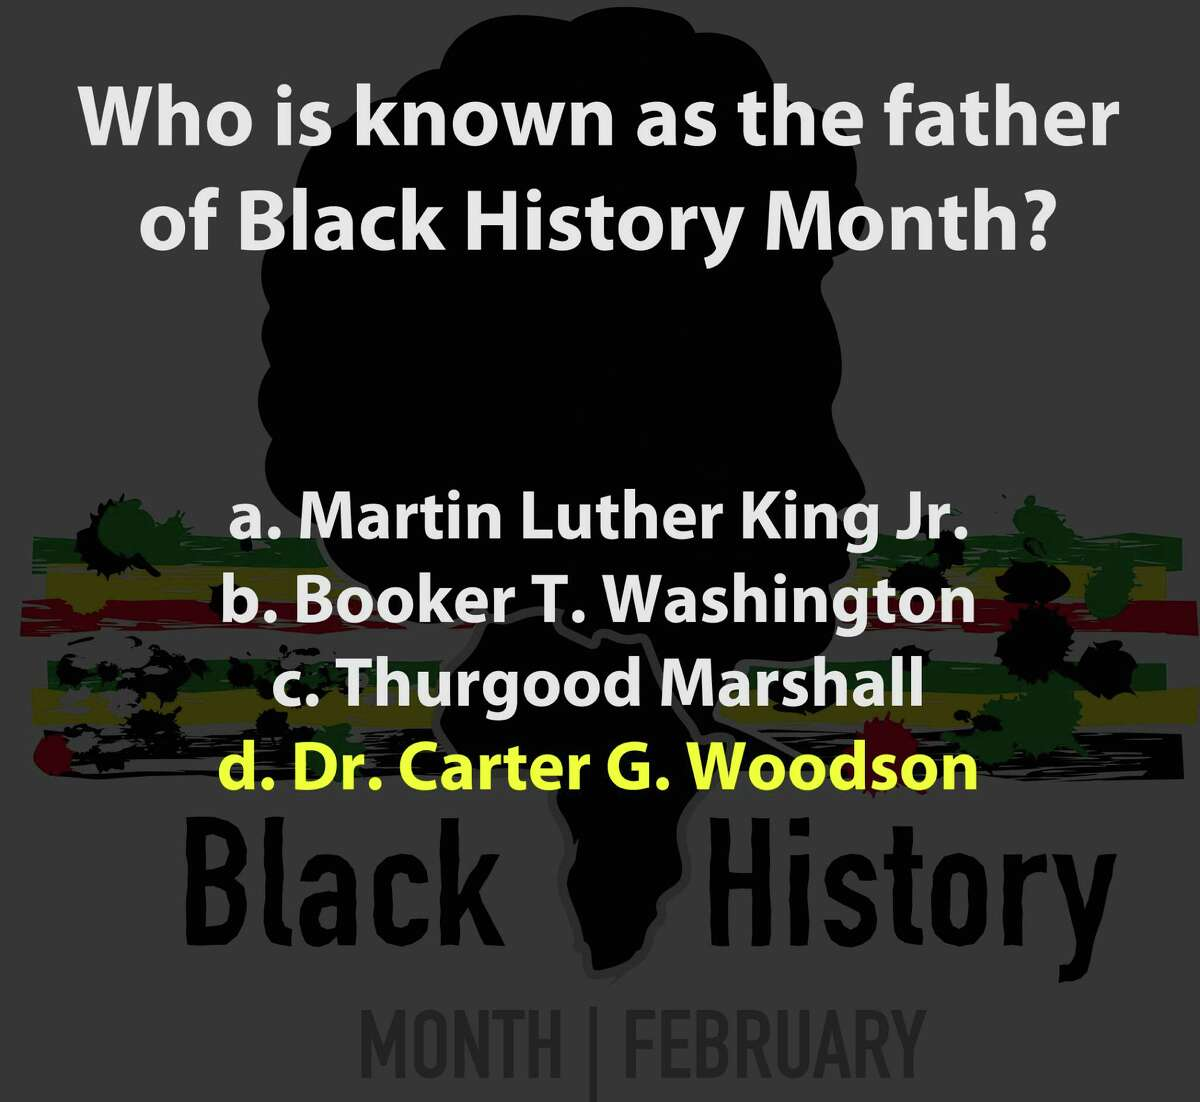 Test your knowledge with this Black History Quiz fromBlack Entertainment Television.